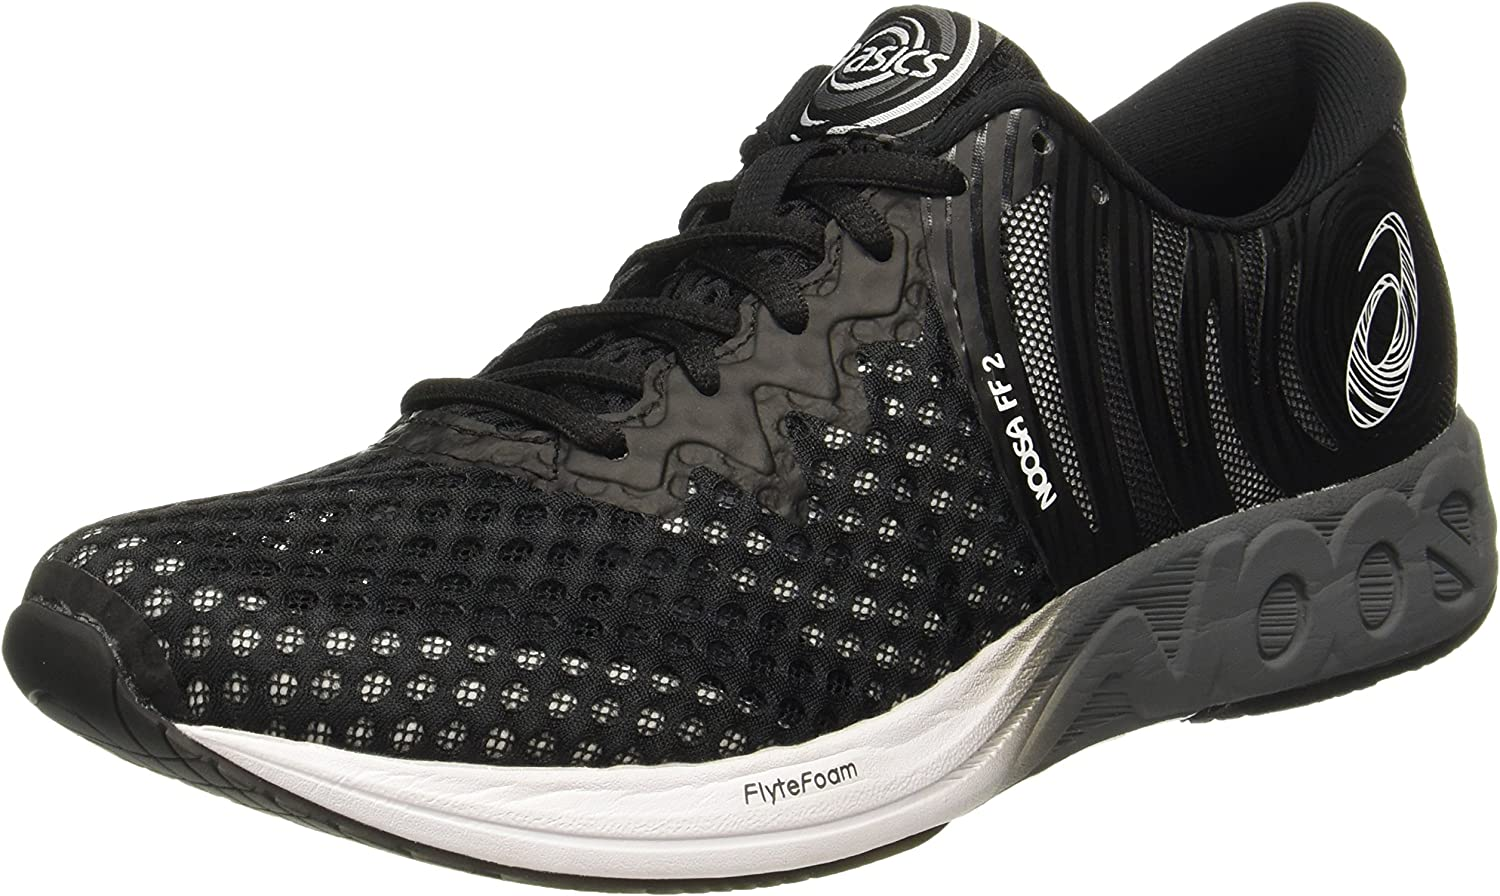 ASICS Men's Noosa Ff 2 Training shoes